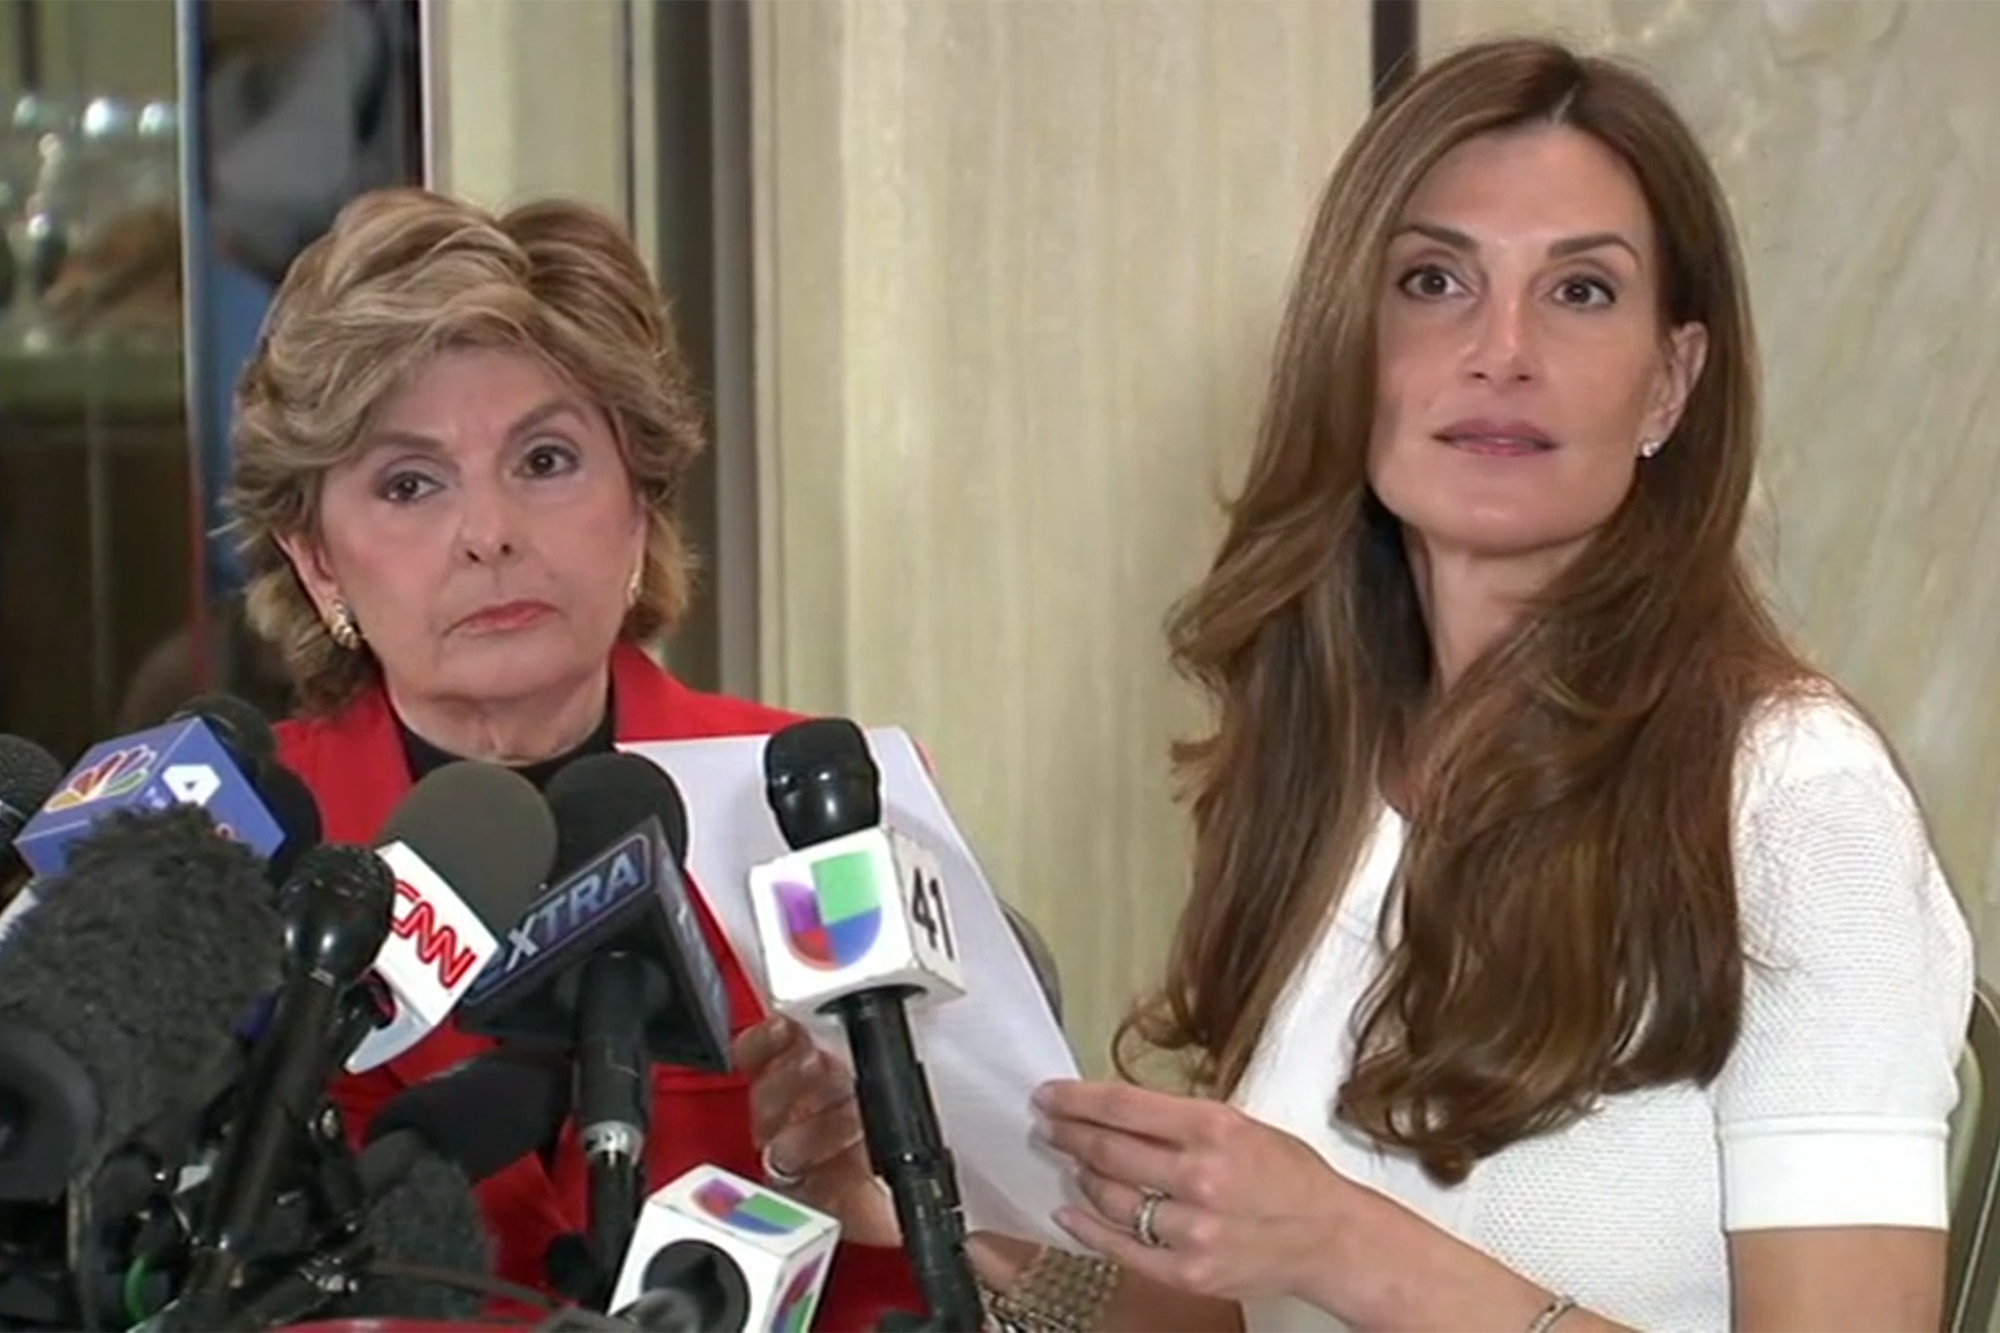 new woman is going to accuse Donald Trump of sexual assault during a press conference taking place in NYC with attorney Gloria Allred